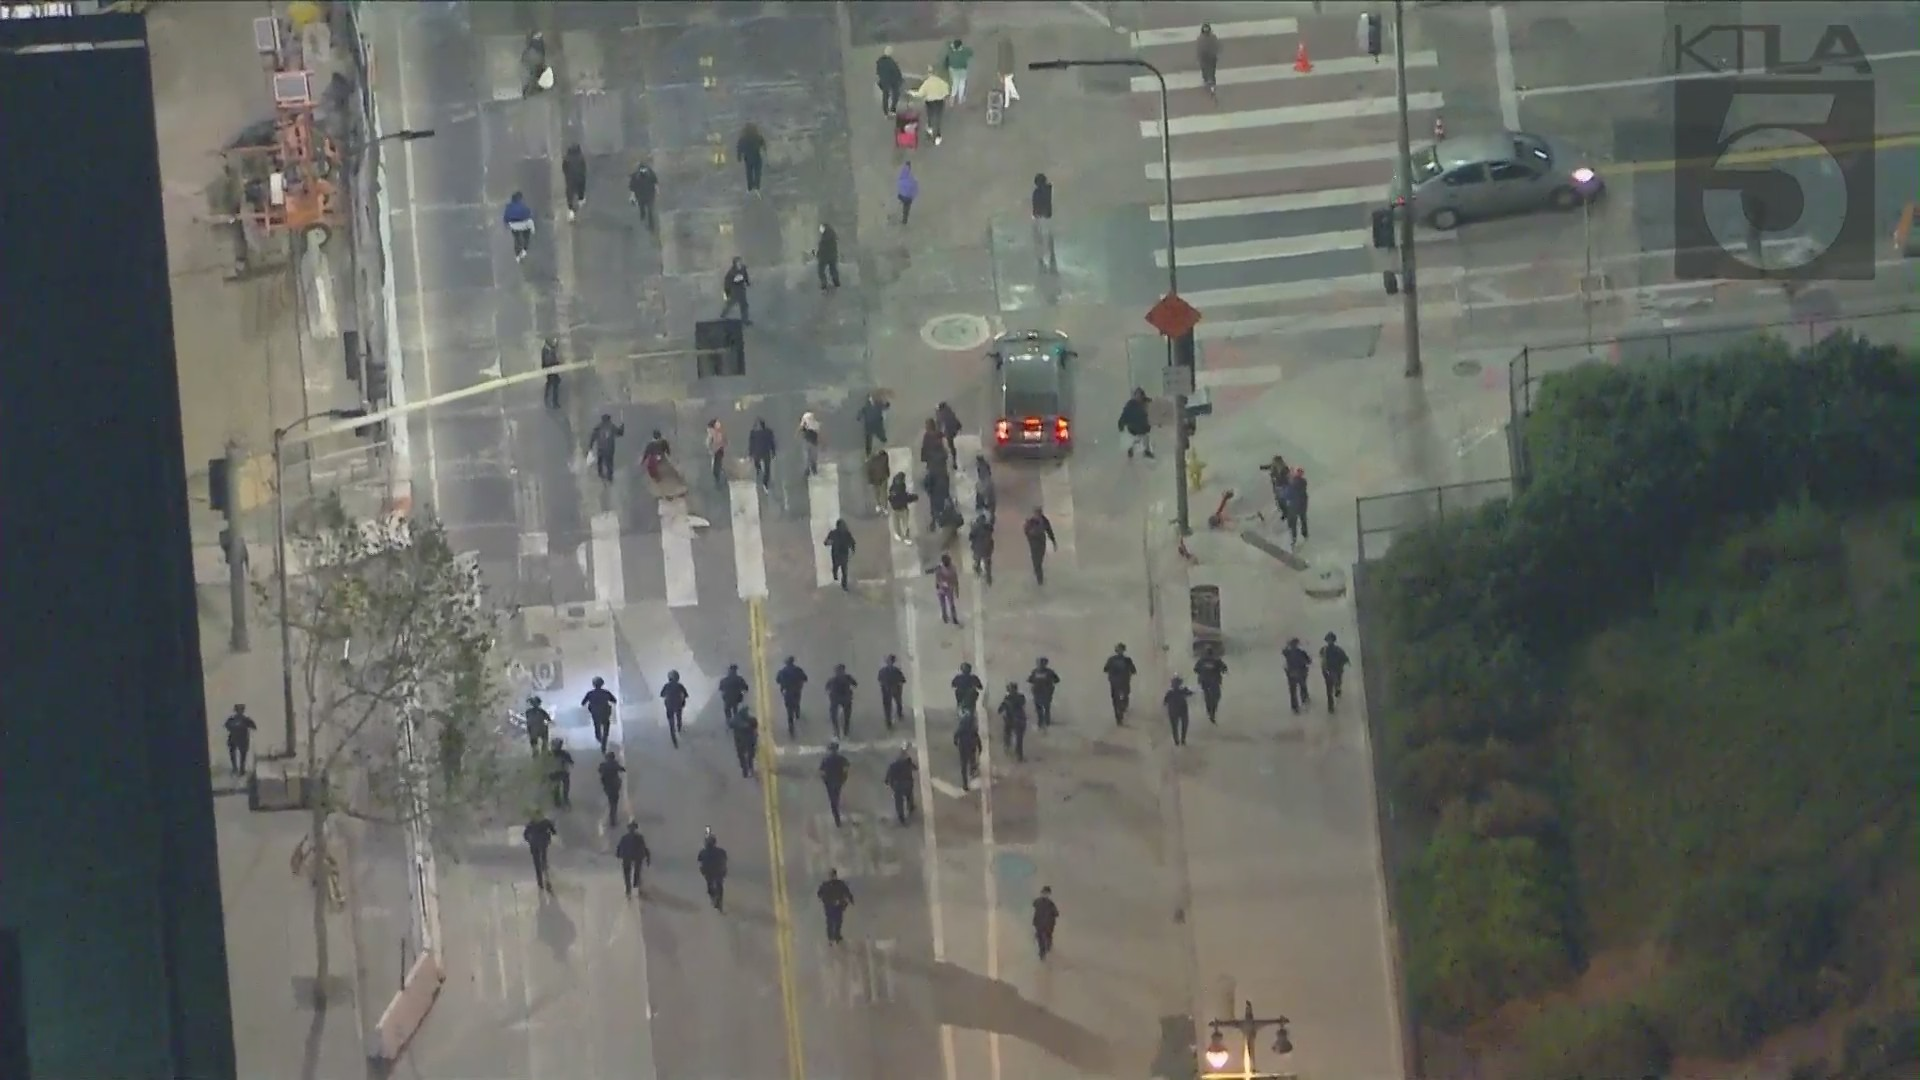 Protesters rallied in front of LAPD's downtown headquarters on April 14, 2021, in the wake of the killing of Daunte Wright, a Black man fatally shot by a police officer during a traffic stop in Minneapolis. (KTLA)